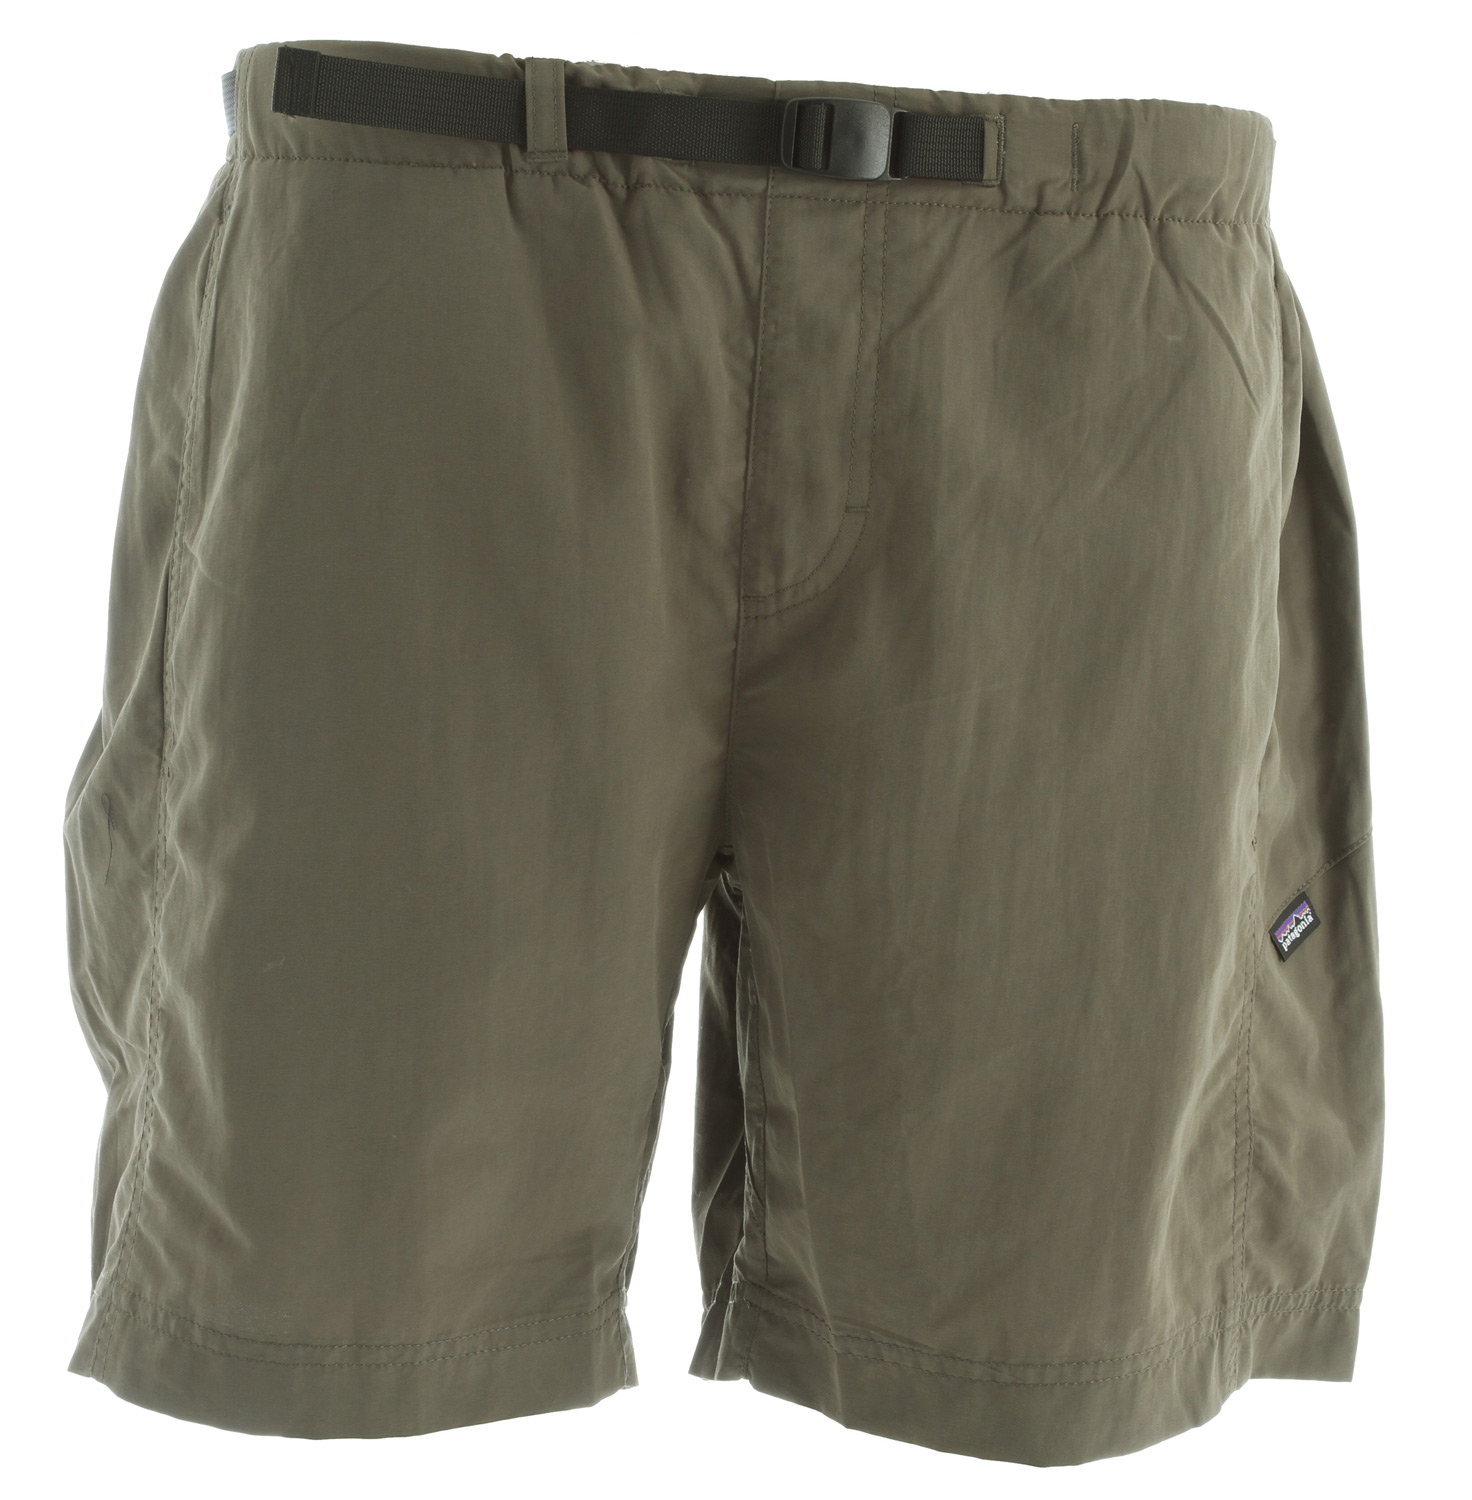 "These pull-on water shorts have a quick-drying, light yet tough nylon fabric, a polyester mesh liner, a moisture-shedding DWR (durable water repellent) finish and 50+ UPF sun protection; 7"" inseam. Our Gi III Water Shorts go best with the songs of canyon wrens, the paths of carved sandstone and the turbulence of Crystal Rapid. They dry quickly, resist hard wear, provide 50+ UPF sun protection and feel light on the skin, thanks to their 100% nylon taslan fabric that has a DWR (durable water repellent) finish. The gusseted crotch allows plenty of movement; an elasticized waist with a built-in adjustable webbing belt holds everything in place. A supple polyester mesh liner and three mesh-lined pockets have a soft and forgiving feel. Inseam is 7"".Key Features of the Patagonia GI III 7"" Water Shorts: Durable, quick-drying nylon twill shorts with a DWR finish and internal mesh liner for land and water use Pull-on shorts with elasticized waistband and built-in adjustable belt with separating buckle Coin safe on-seam front pockets with polyester mesh for drainage Right rear drop-in zip pocket has non-corrosive zipper and polyester mesh for drainage Gusseted crotch for increased mobility 3.4-oz 100% nylon taslan with a DWR (durable water repellent) finish and 50+ UPF sun protection. Liner: 100% polyester mesh 221 g (7.8 oz) Made in Vietnam. - $29.95"